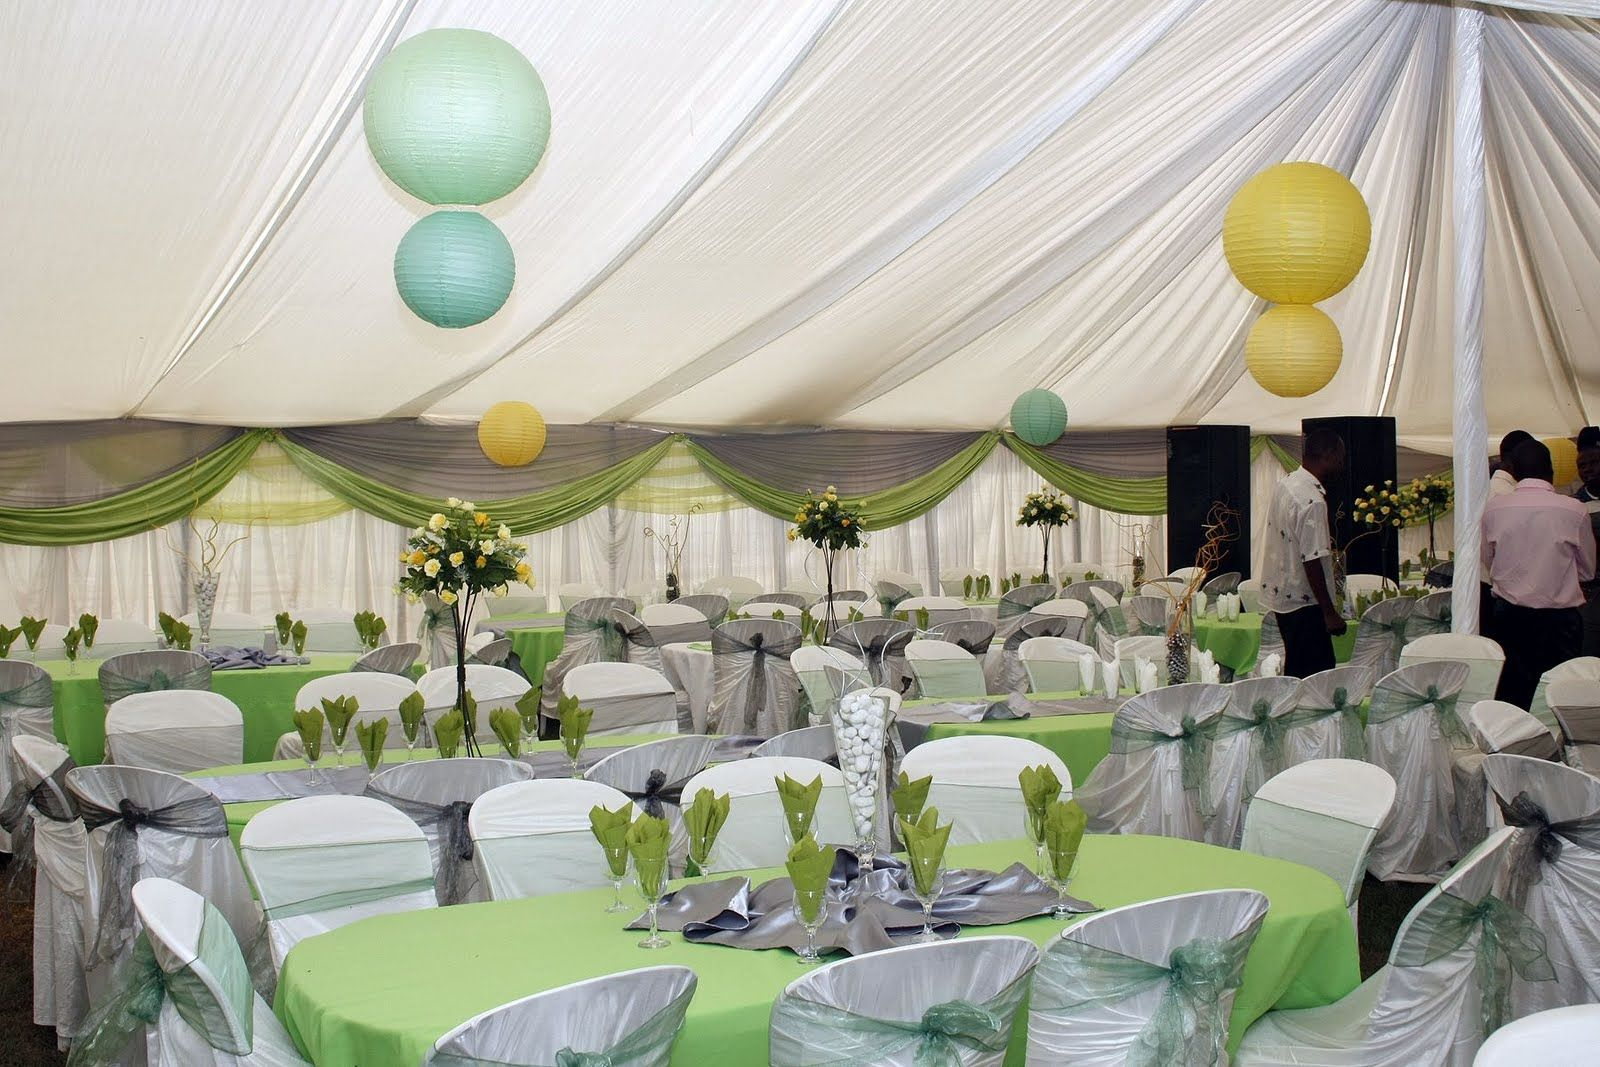 Imposing Image And Garden Wedding Reception Decoration Ideas How To Make Decorations Walk